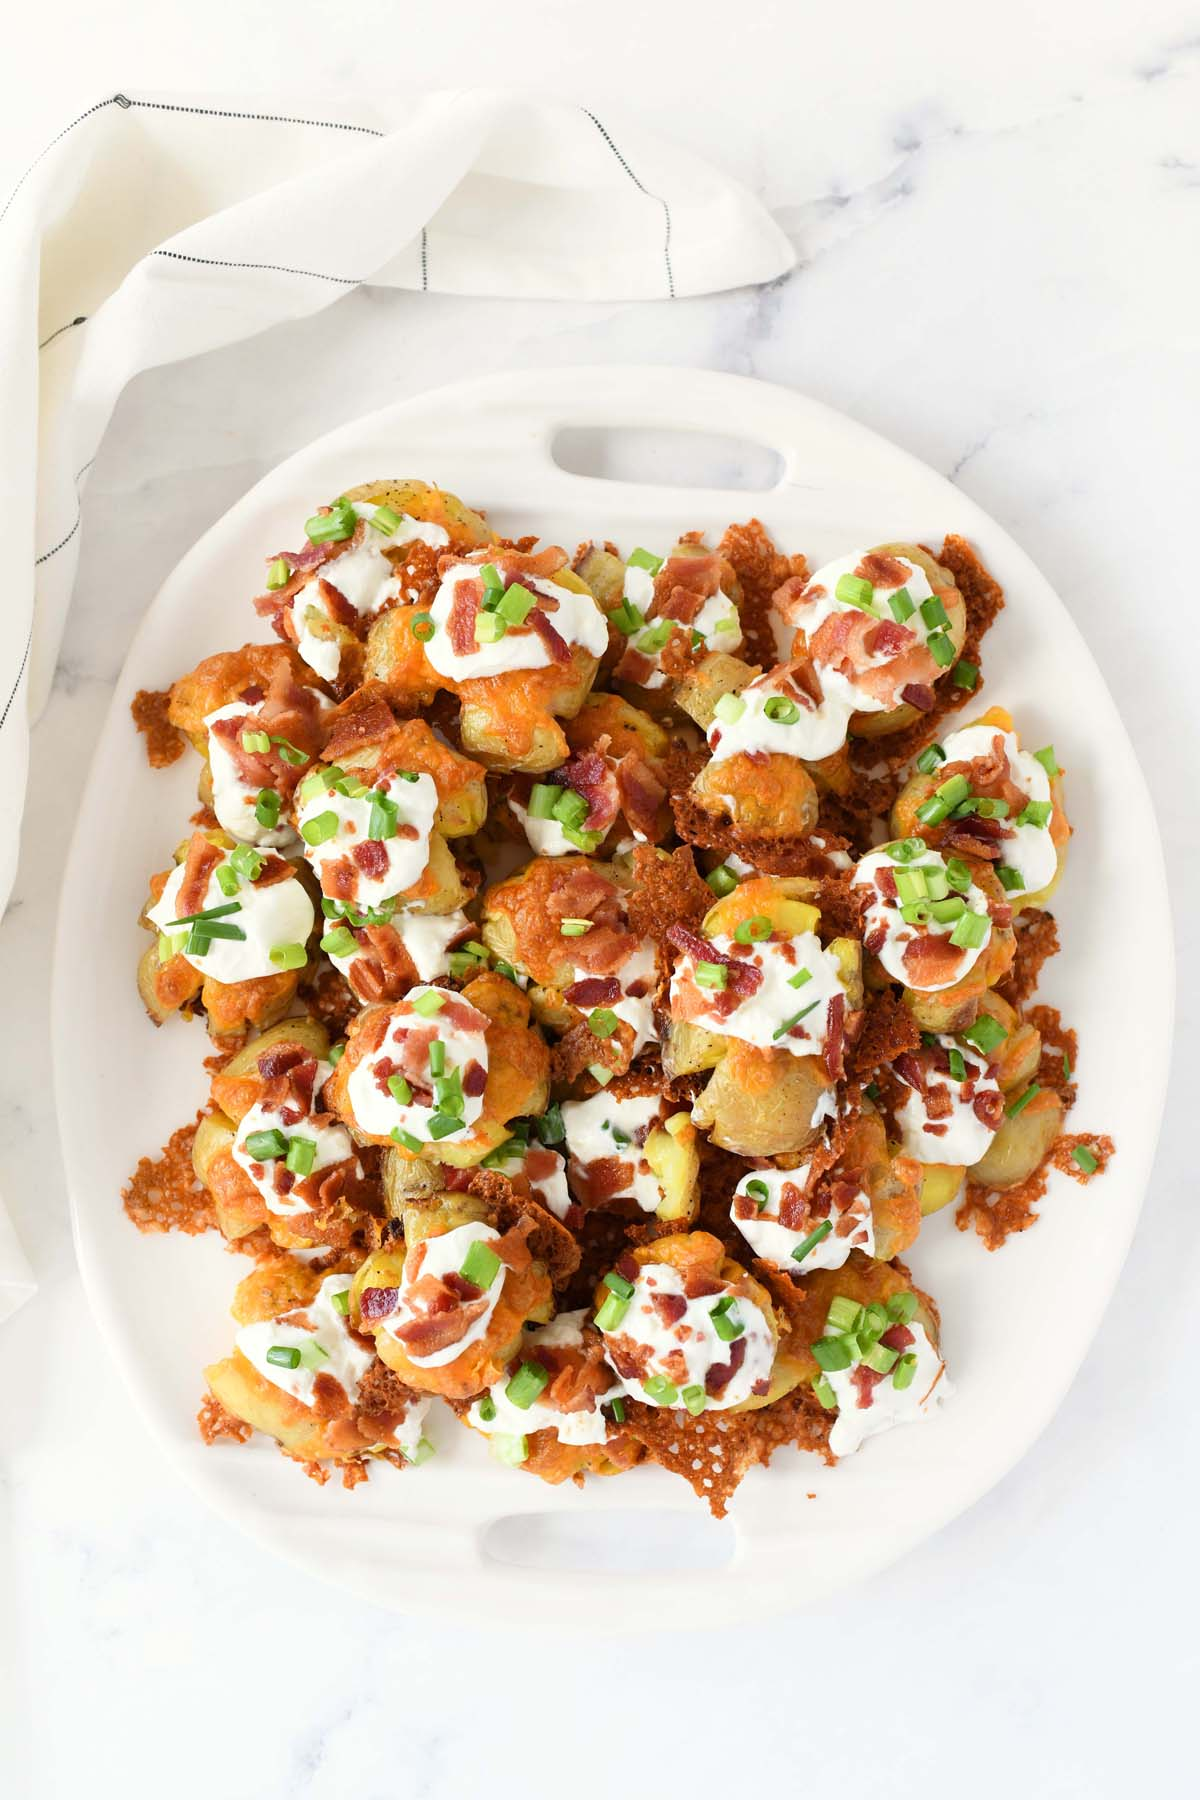 Cheesy Bacon smashed potatoes on an oval serving tray with a white napkin.